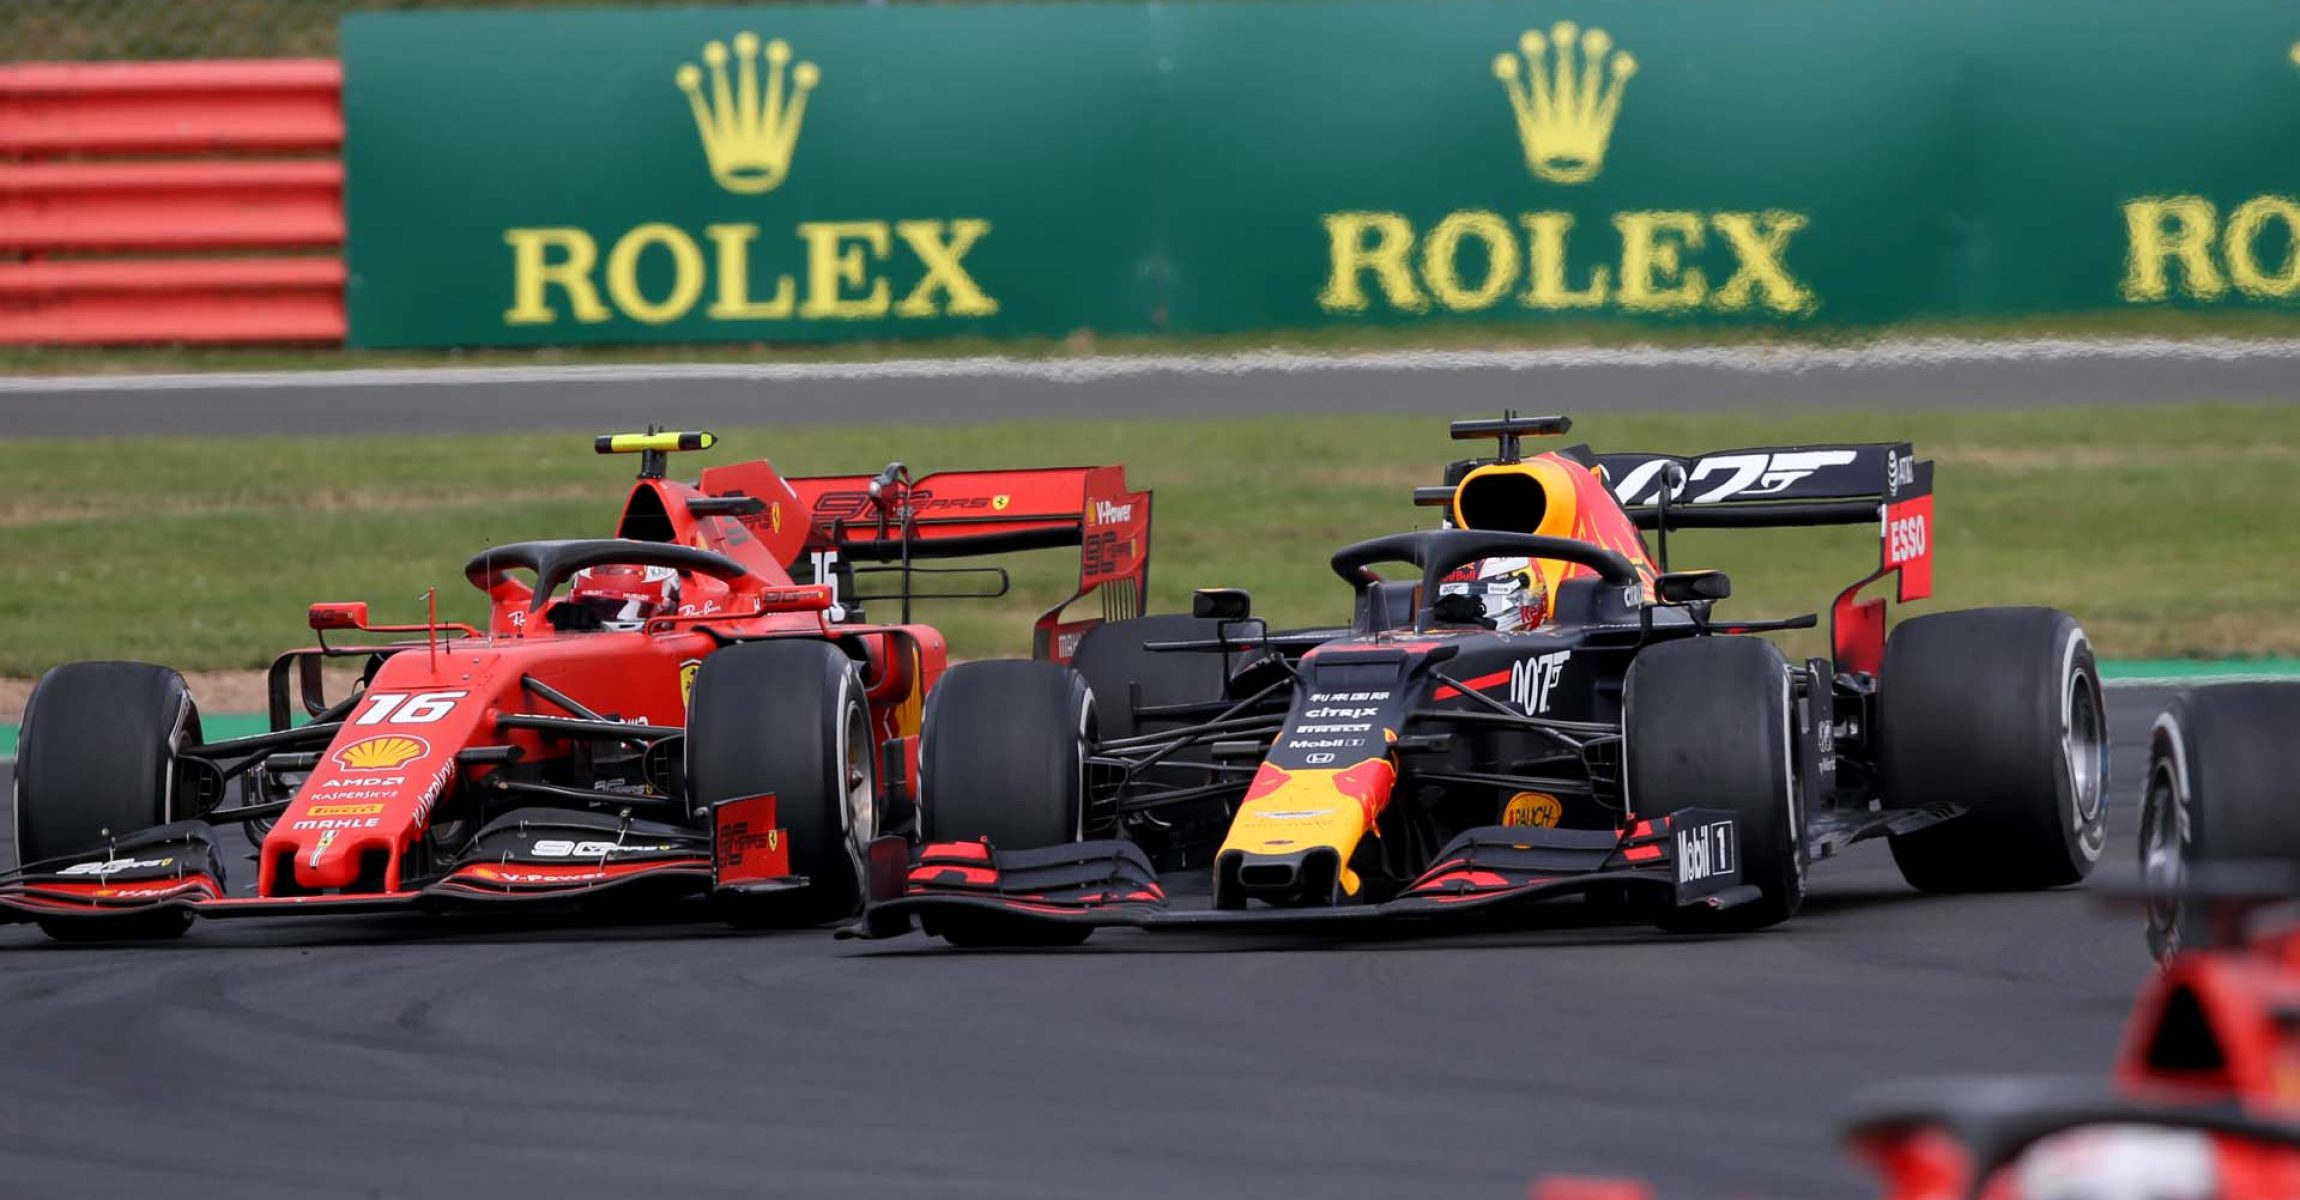 NORTHAMPTON, ENGLAND - JULY 14: Max Verstappen of the Netherlands driving the (33) Aston Martin Red Bull Racing RB15 and Charles Leclerc of Monaco driving the (16) Scuderia Ferrari SF90 battle for track position during the F1 Grand Prix of Great Britain at Silverstone on July 14, 2019 in Northampton, England. (Photo by Charles Coates/Getty Images) // Getty Images / Red Bull Content Pool // AP-1ZXUVTCA92111 // Usage for editorial use only // Please go to www.redbullcontentpool.com for further information. //